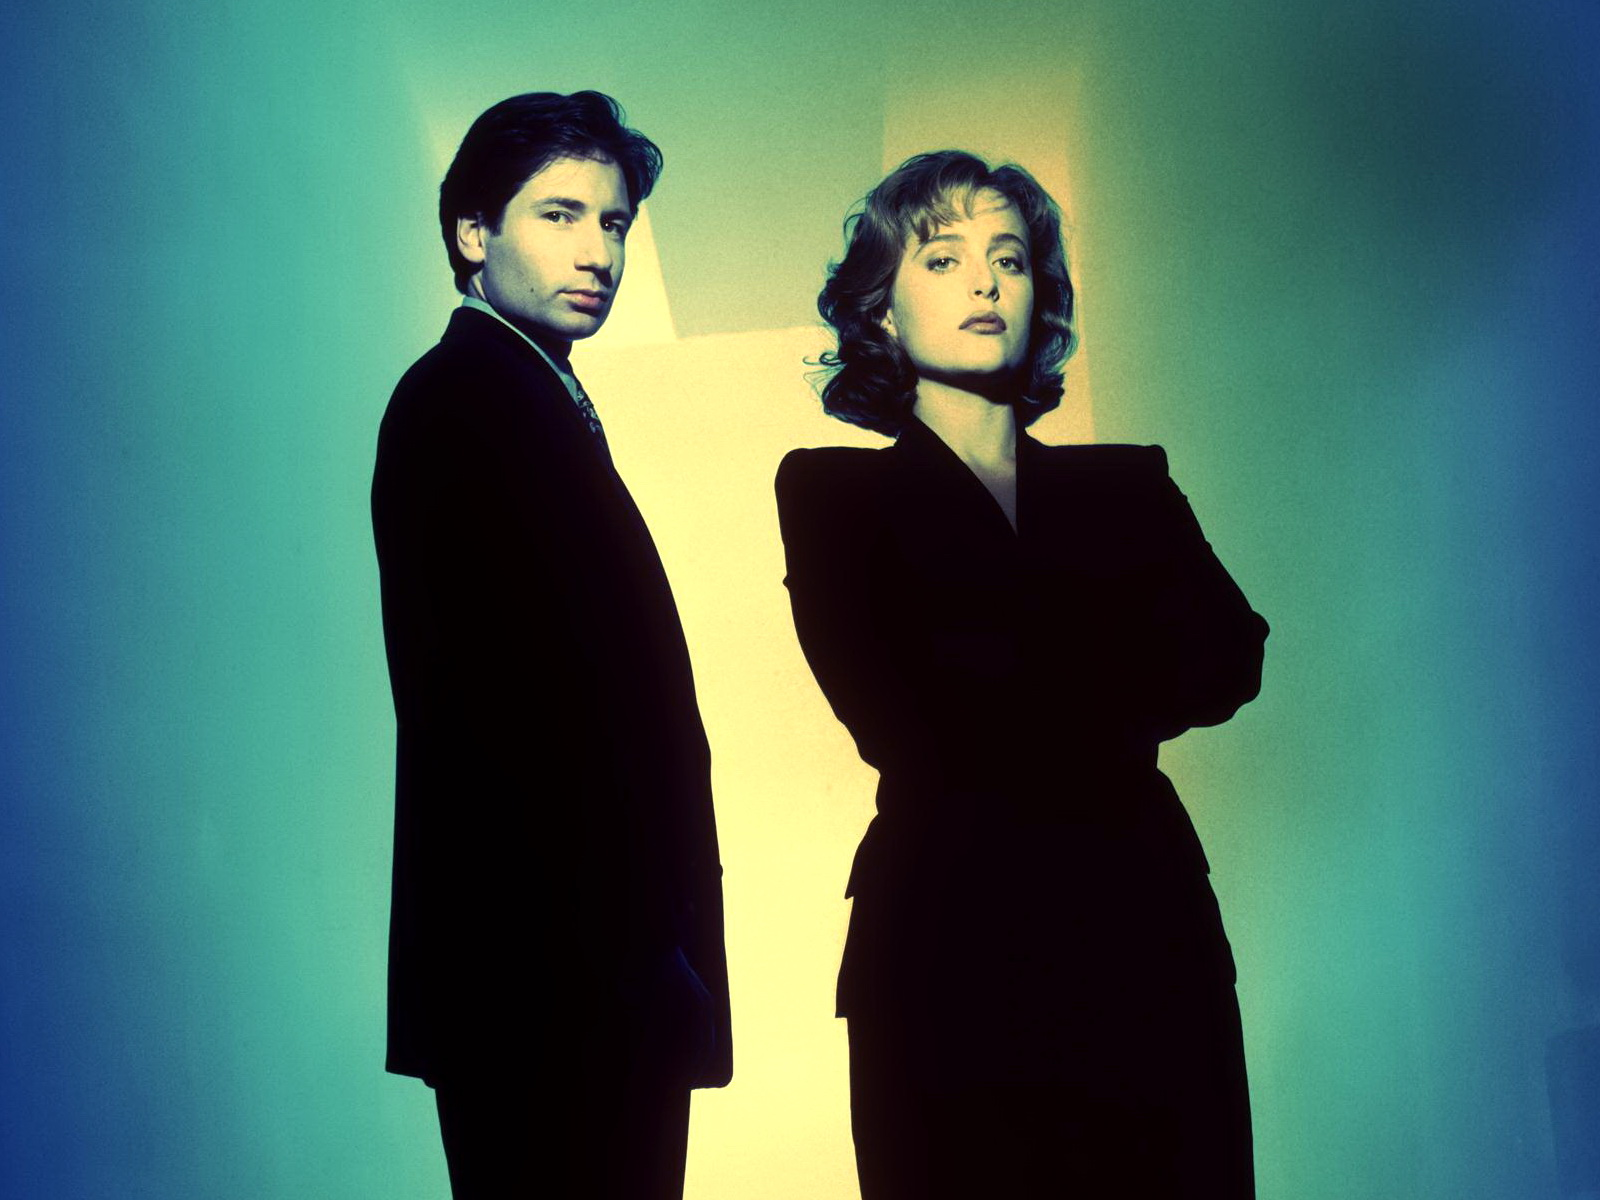 David Duchovny, Gillian Anderson Created by Chris Carter cultstories X-Files serie tv paranormale mistero ufo alieni streaming episodi theme voglio crederci sigla nuova serie cast attori alien action figures al di là del tempo e dello spazio folie à deux x files board game cineblog dvd serie completa duchovny dana scully i want to believe julianne moore mythology monster box morte tra i ghiacci nuovi episodi nona stagione ultima puntata young at heart Fox Mulder and Dana Scully